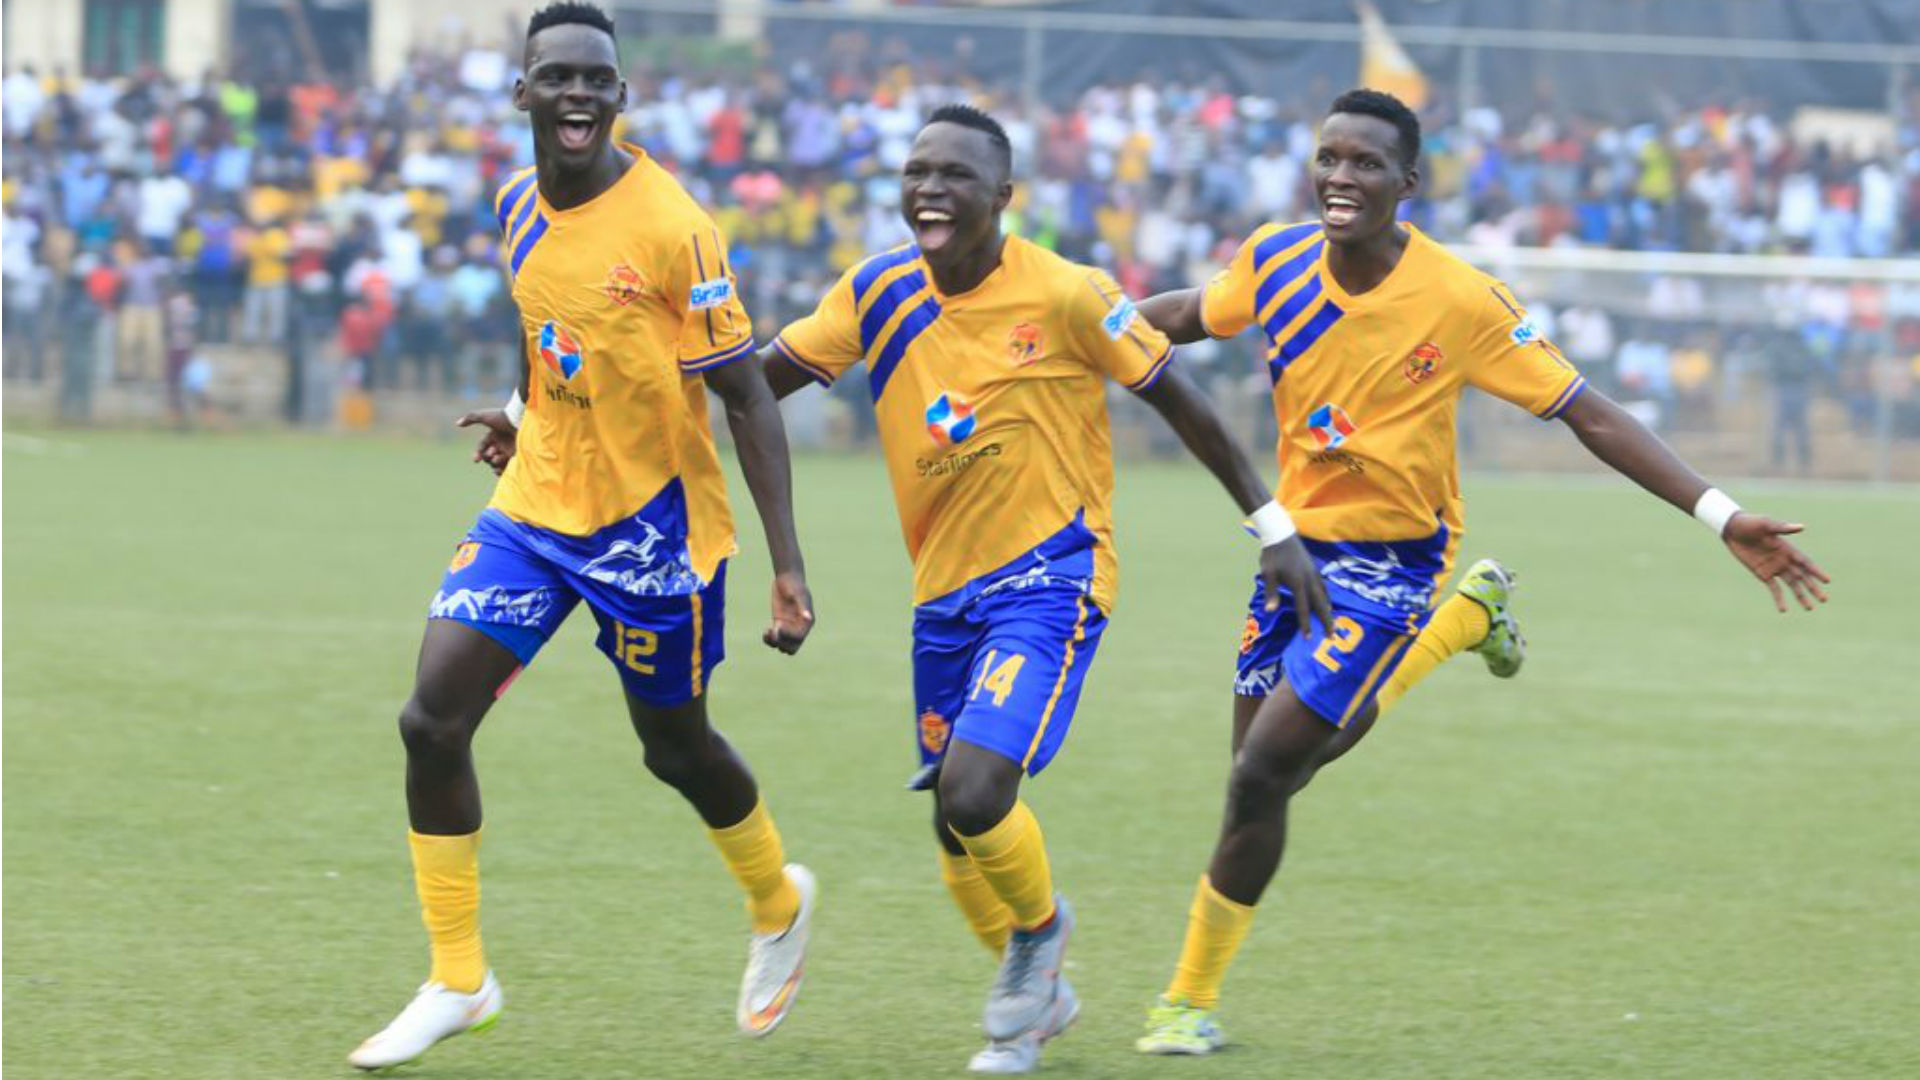 KCCA FC's Mutyaba strikes to hand Vipers SC their first loss ...